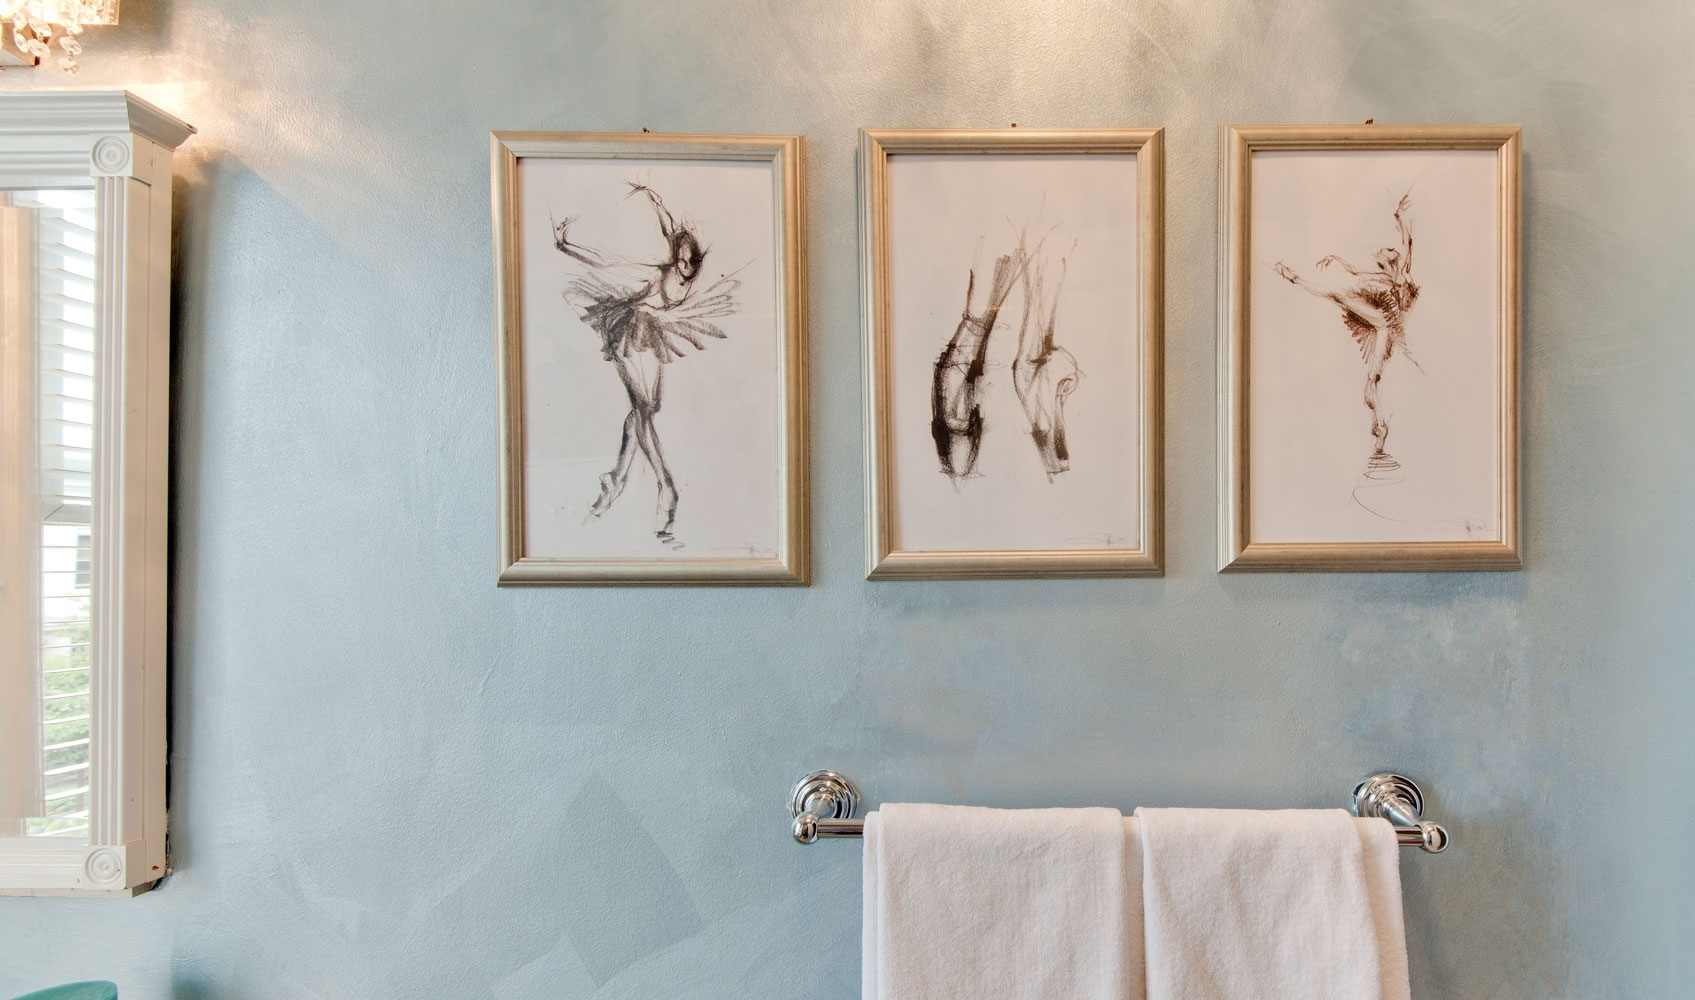 Bathroom: Bathroom Wall Decor: Easiest Way To Beautify Your Regarding Most Popular Wall Accents For Bathroom (View 5 of 15)